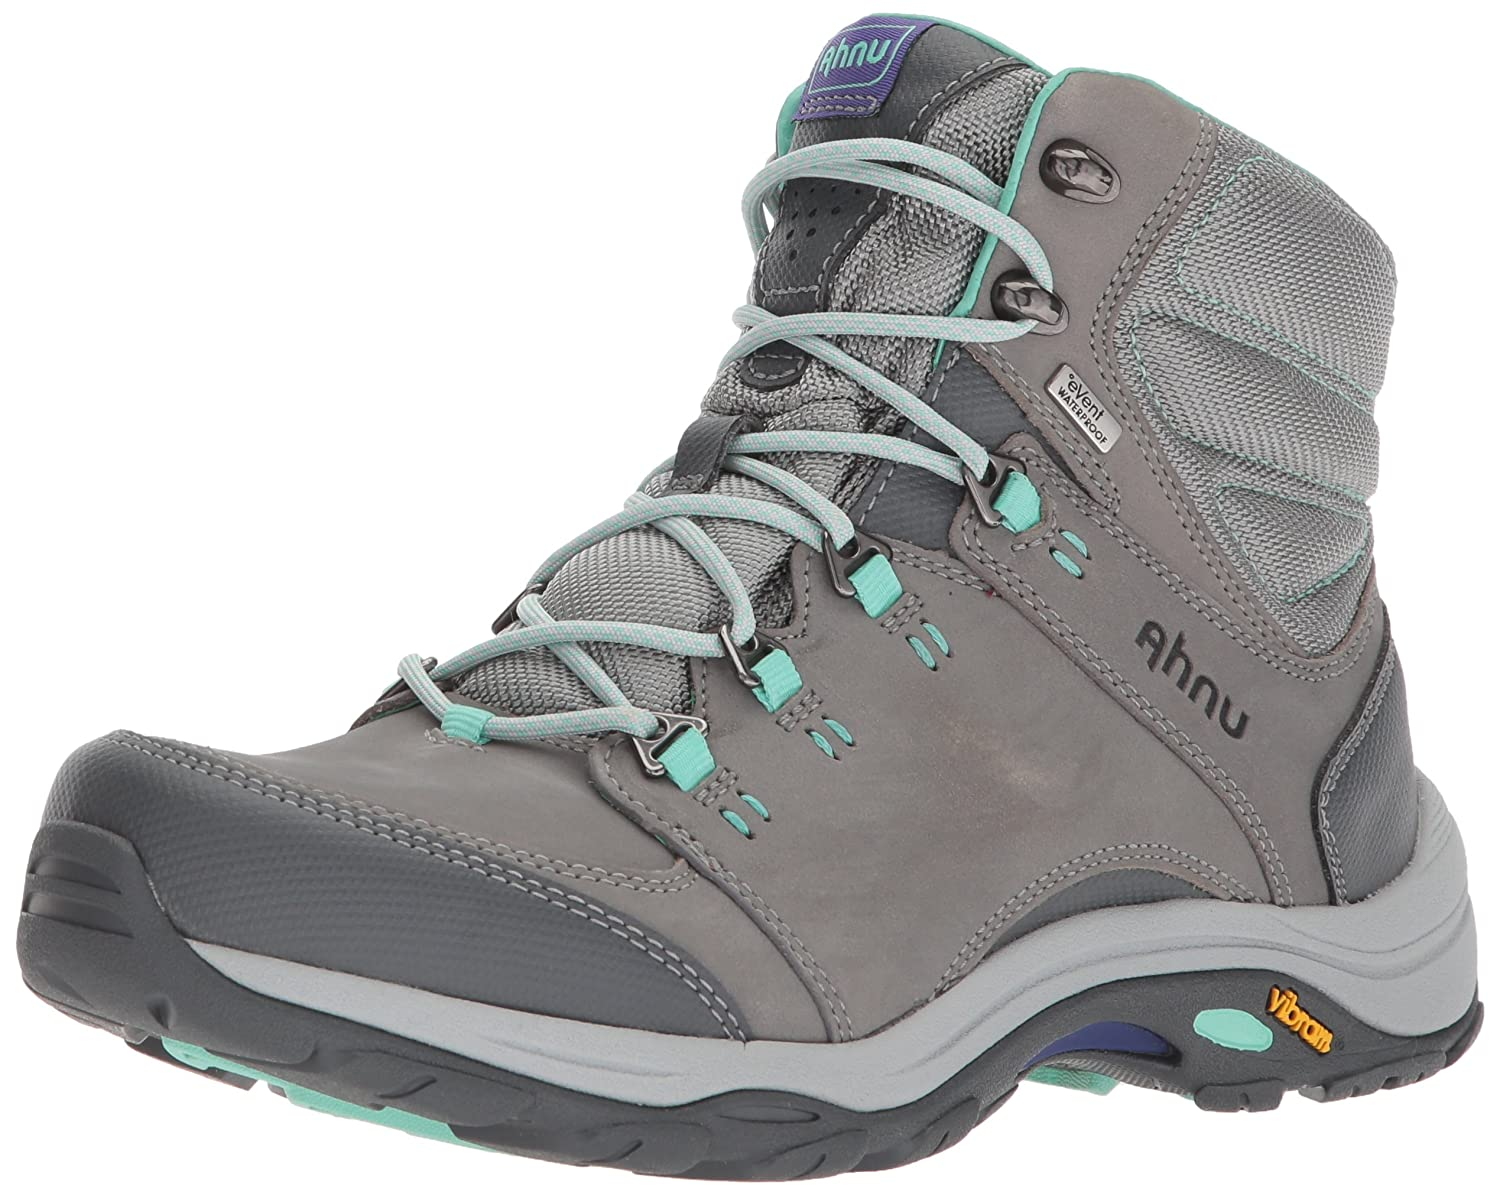 Ahnu Women`s W Montara III Event Hiking Boot B071G3F3XZ 9.5 D(M) US|Wild Dove